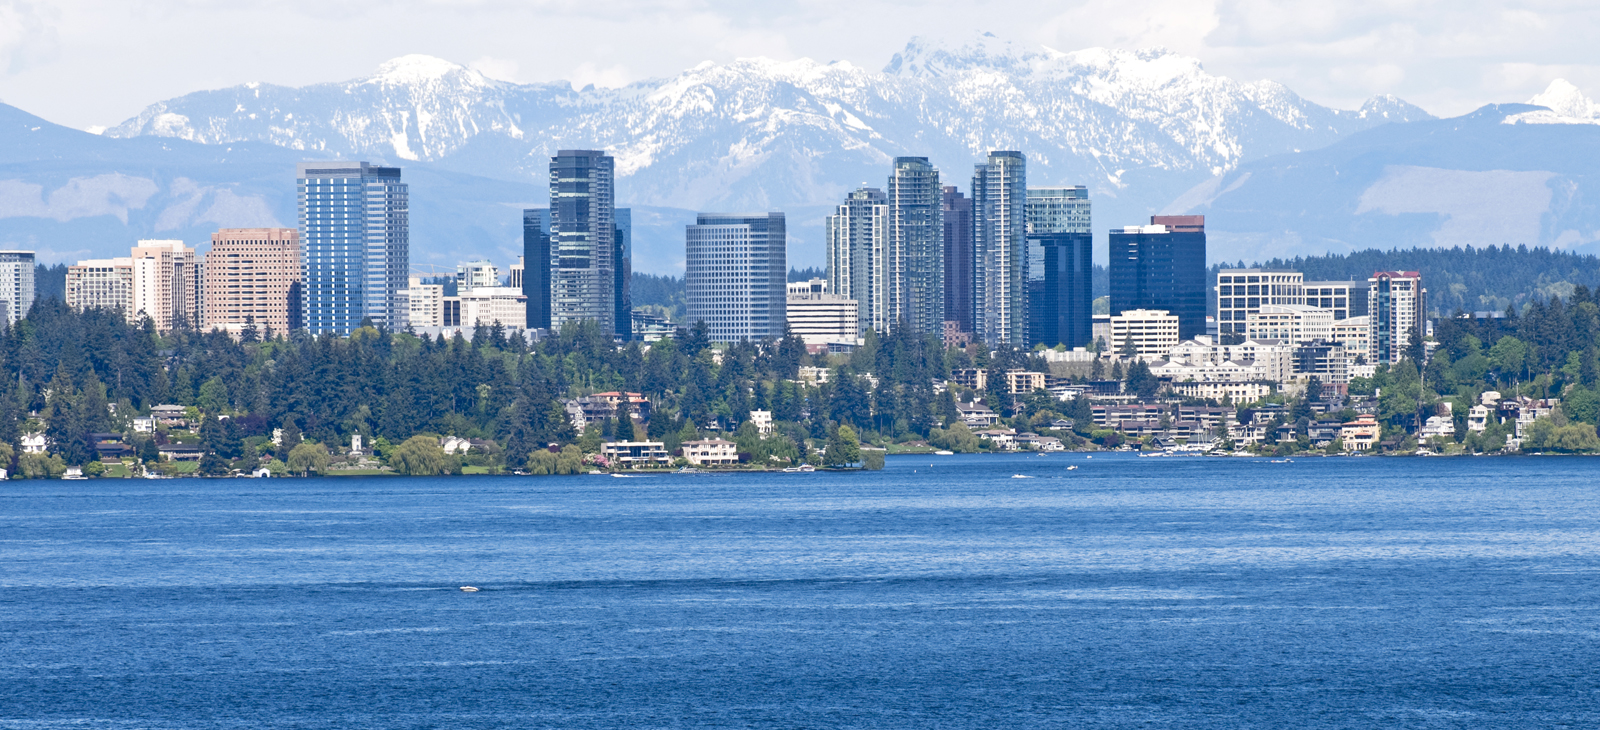 Tacoma To Seattle >> Photo Gallery - SIlver Cloud Inns and Hotels Bellevue Downtown